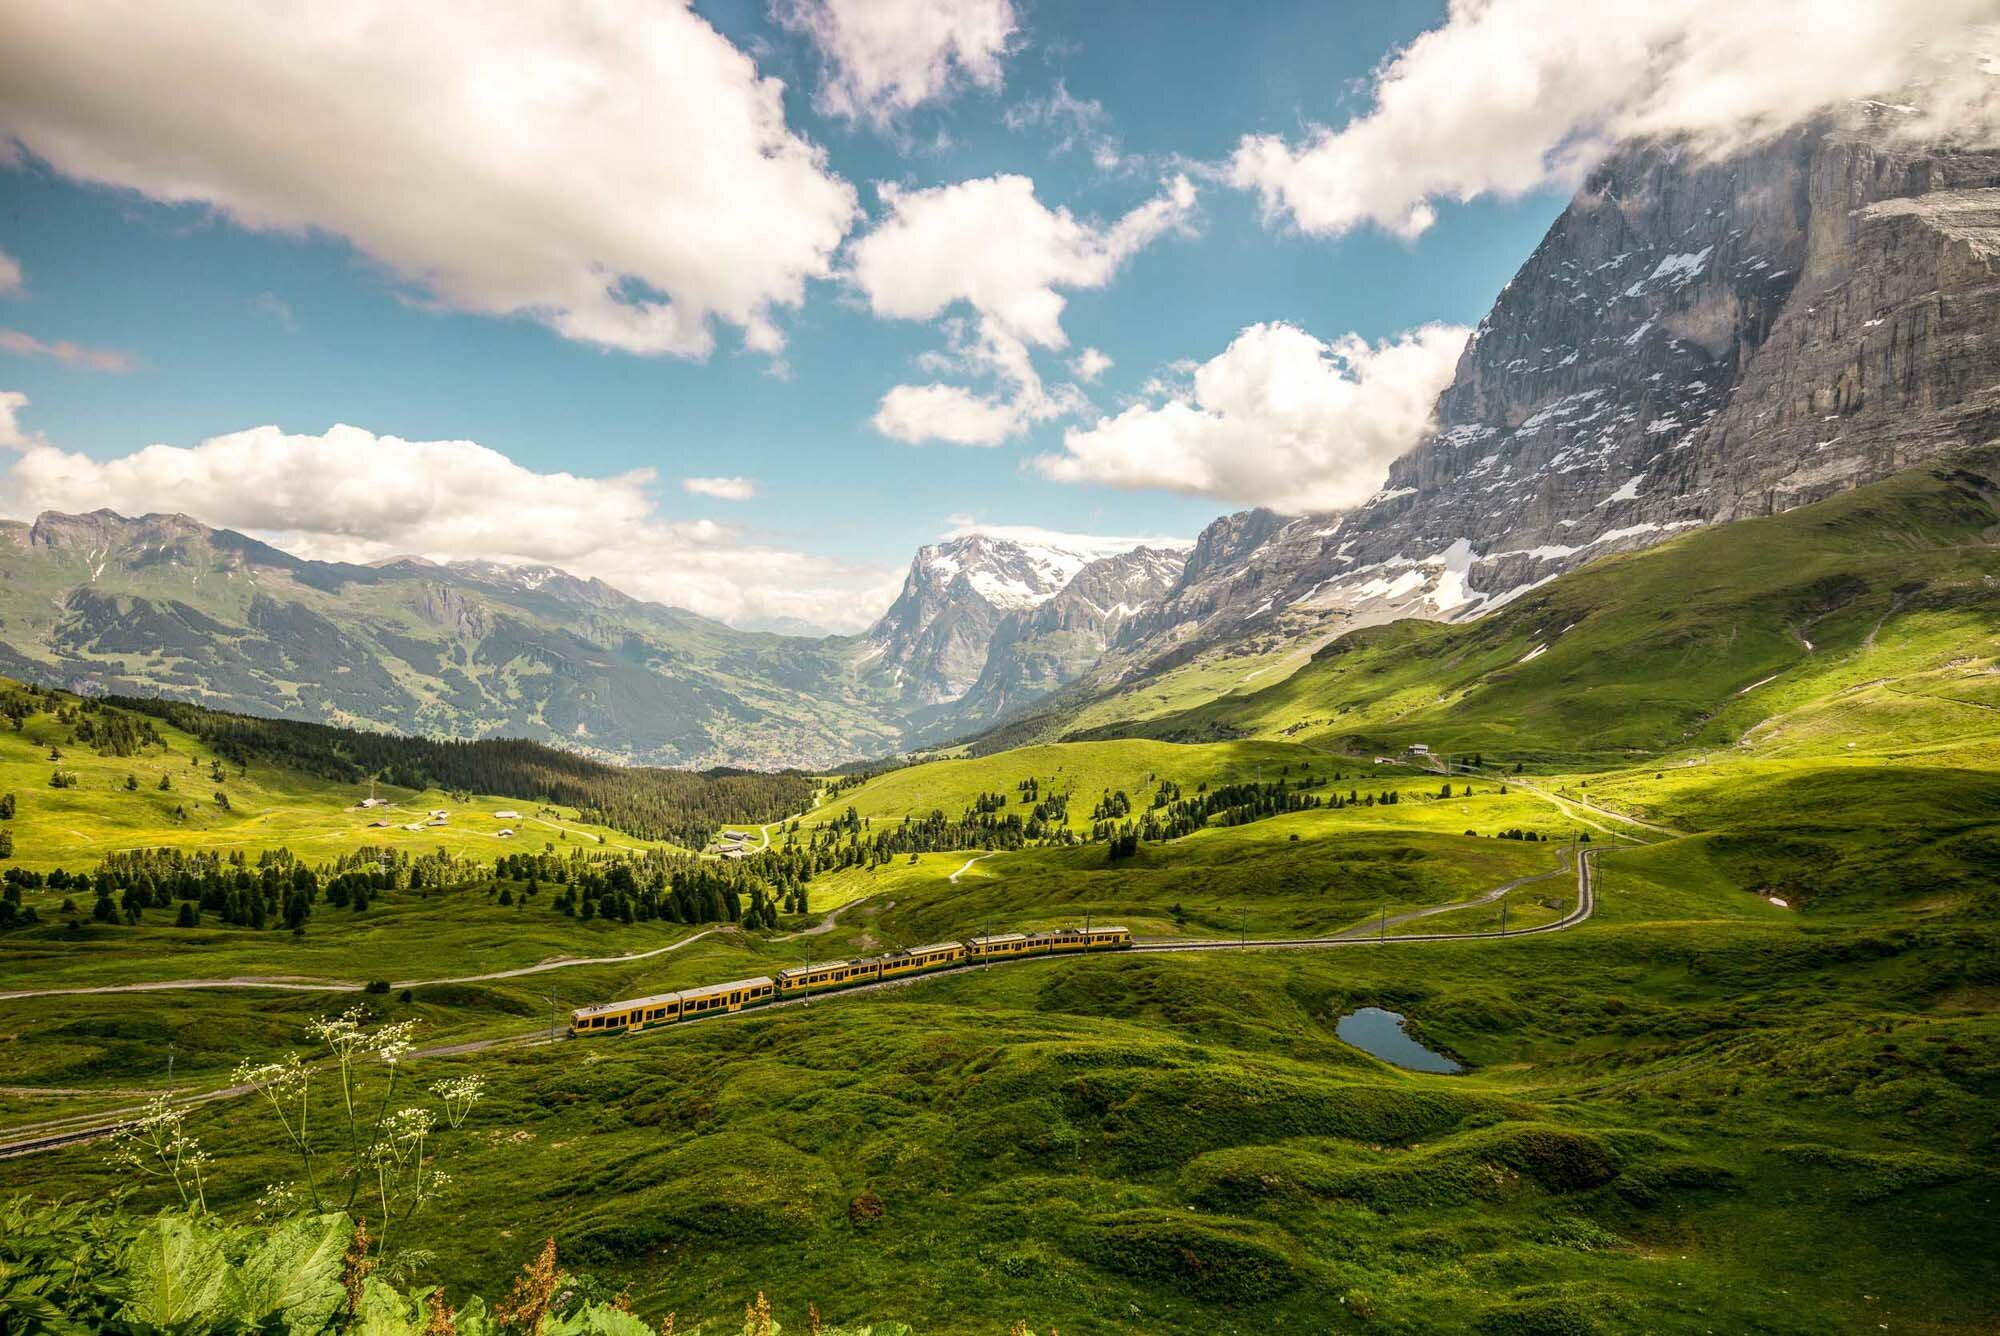 On the Kleine Scheidegg with a view to Grindelwald. The Jungfraubahn in front of the Eiger North Face. Copyright by: Switzerland Tourism